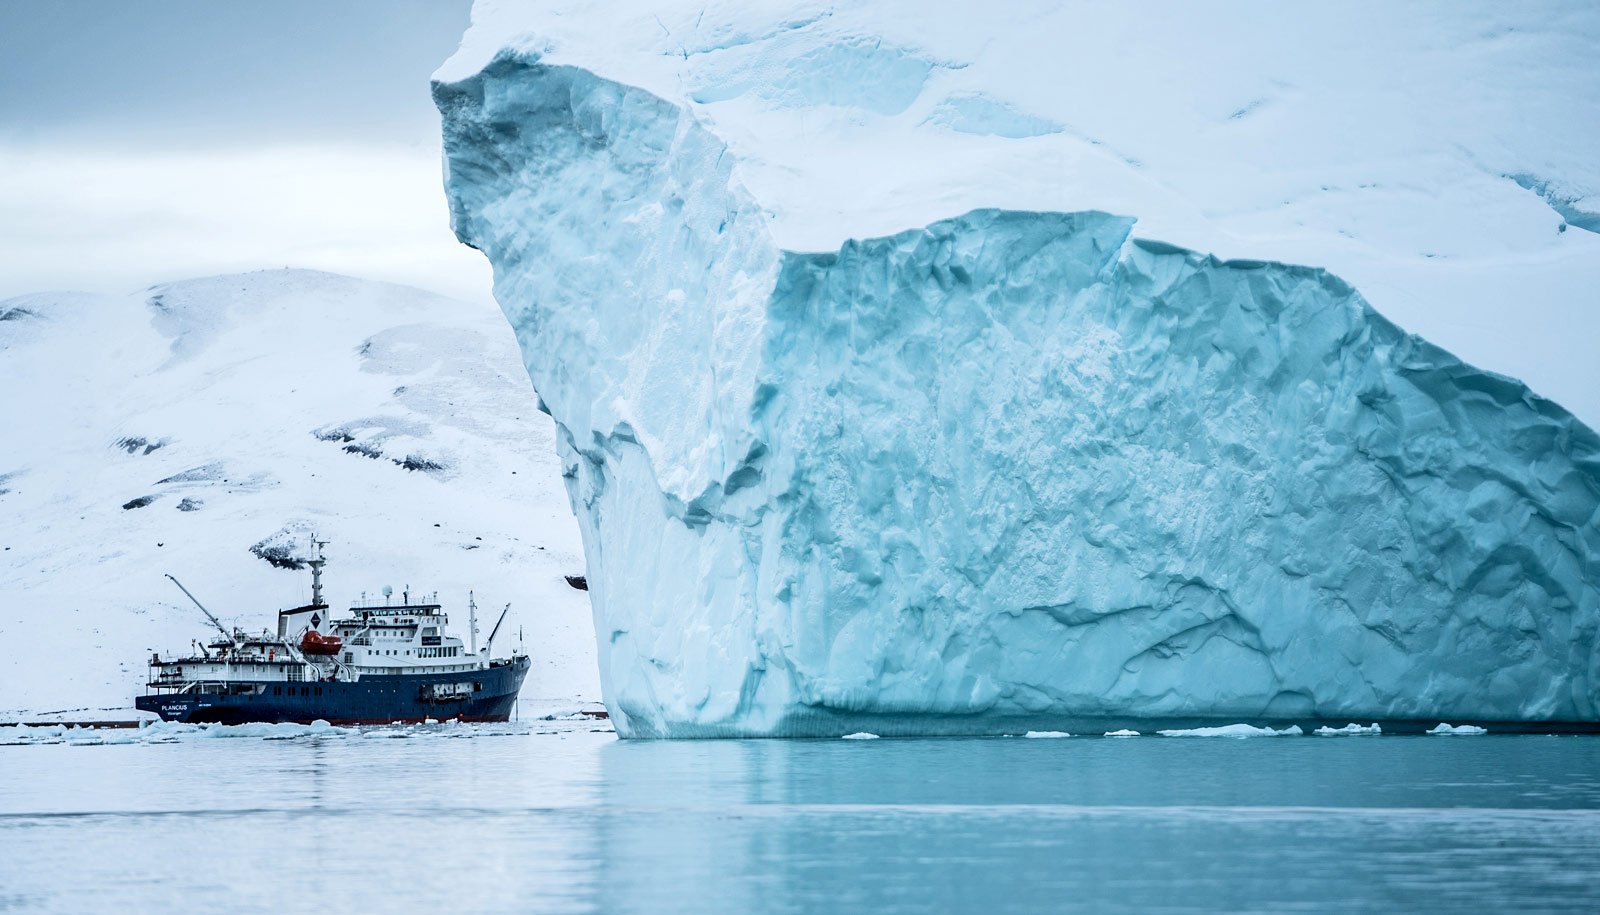 Snowline helps set melting speed of Greenland ice sheet